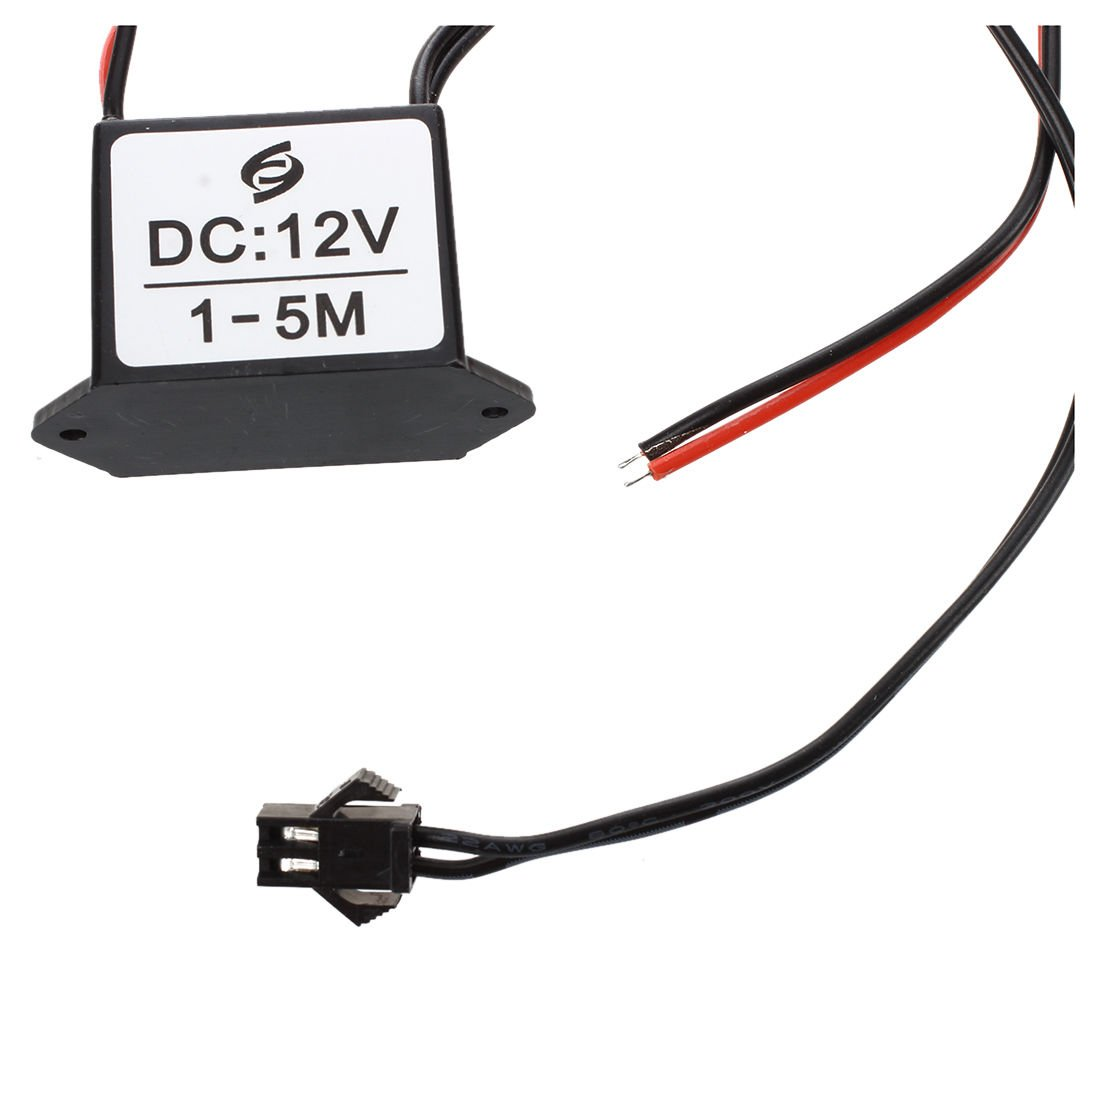 Amazon.com: SODIAL(R) red-black cable DC 12V EL wire neon glow strip ...